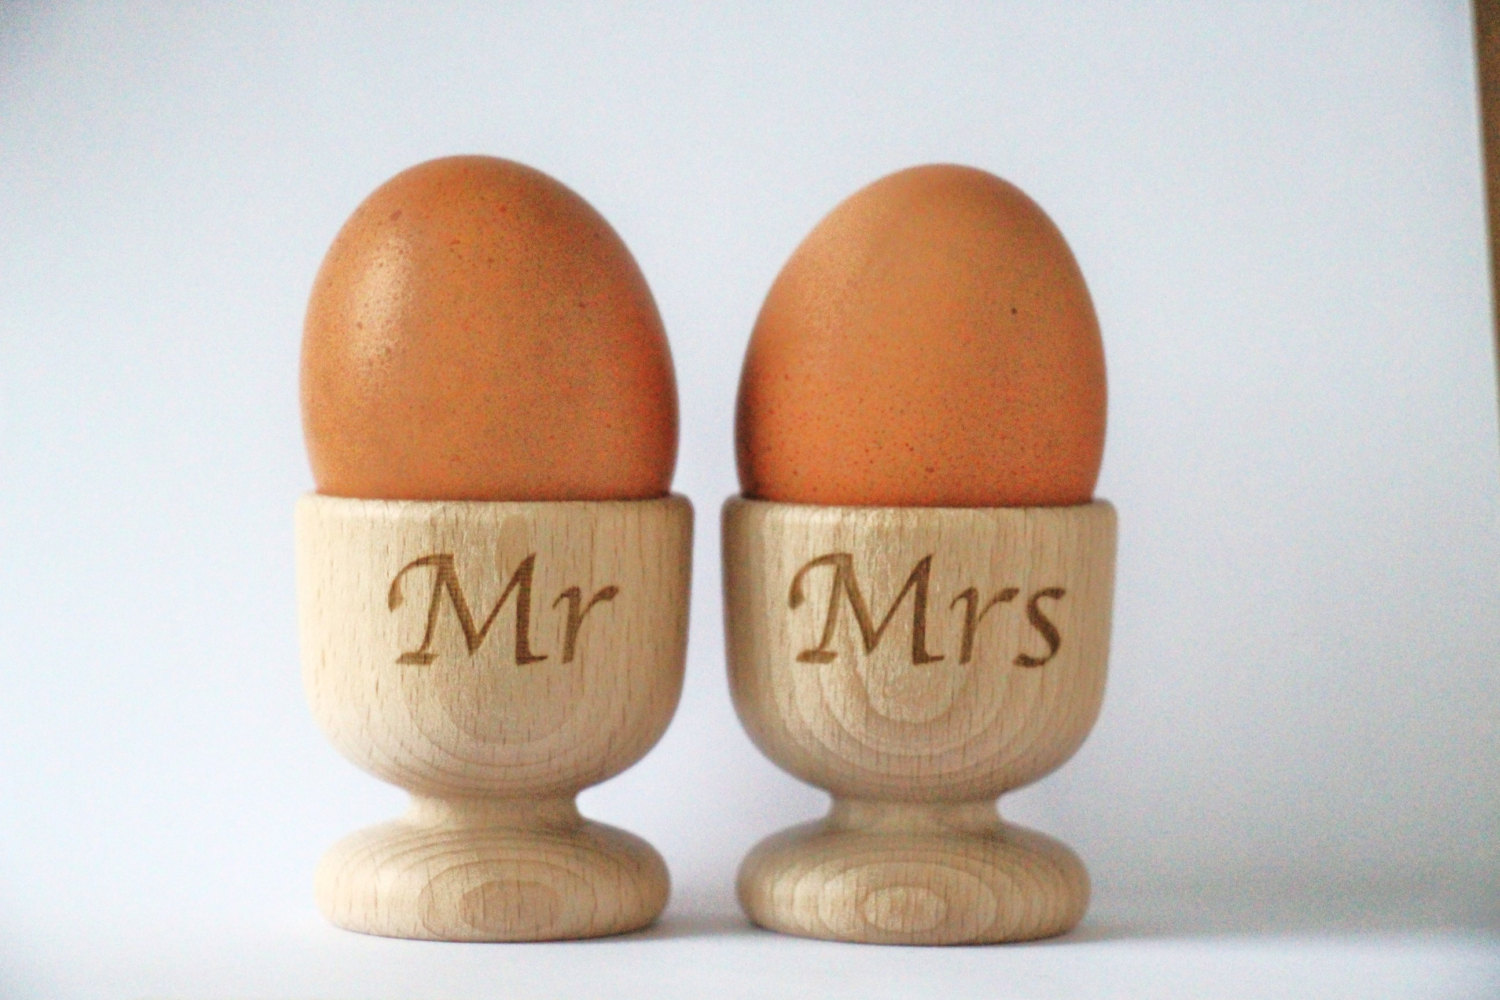 Wooden Egg Cups, Mr & Mrs Egg Cups